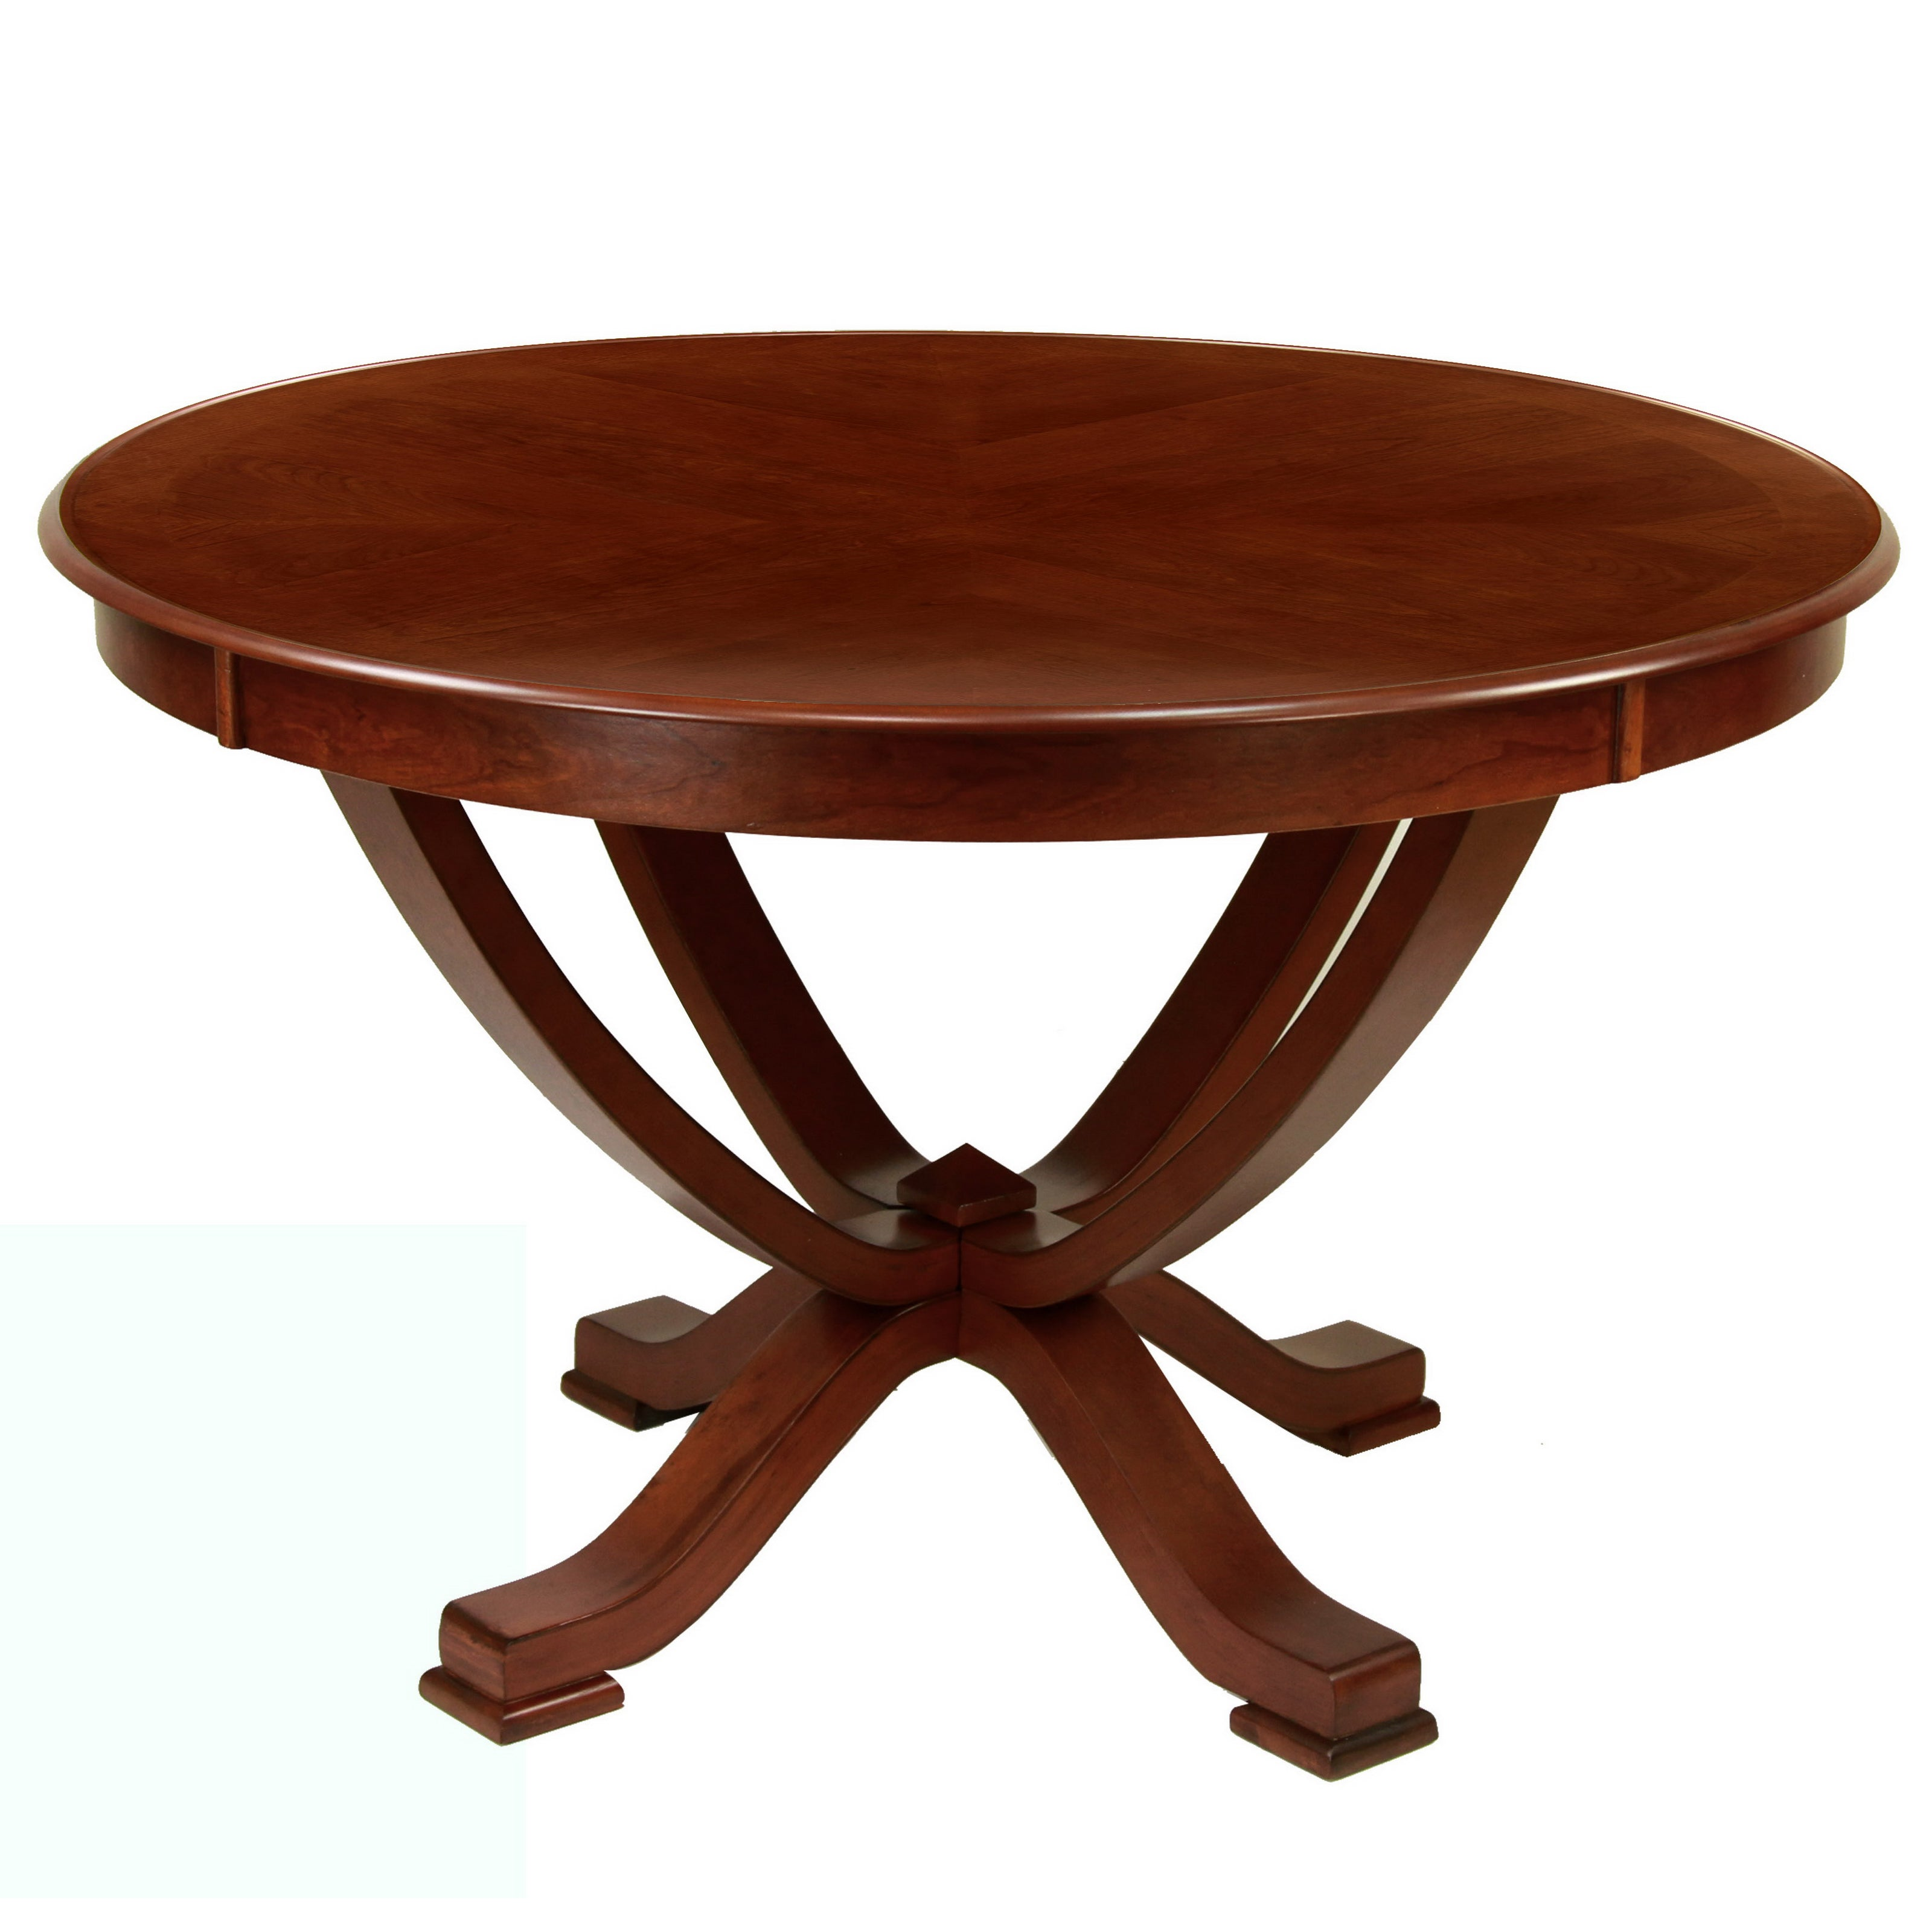 42 Inch Dining Table Images Round With Leaf 60 Buy Pedestal